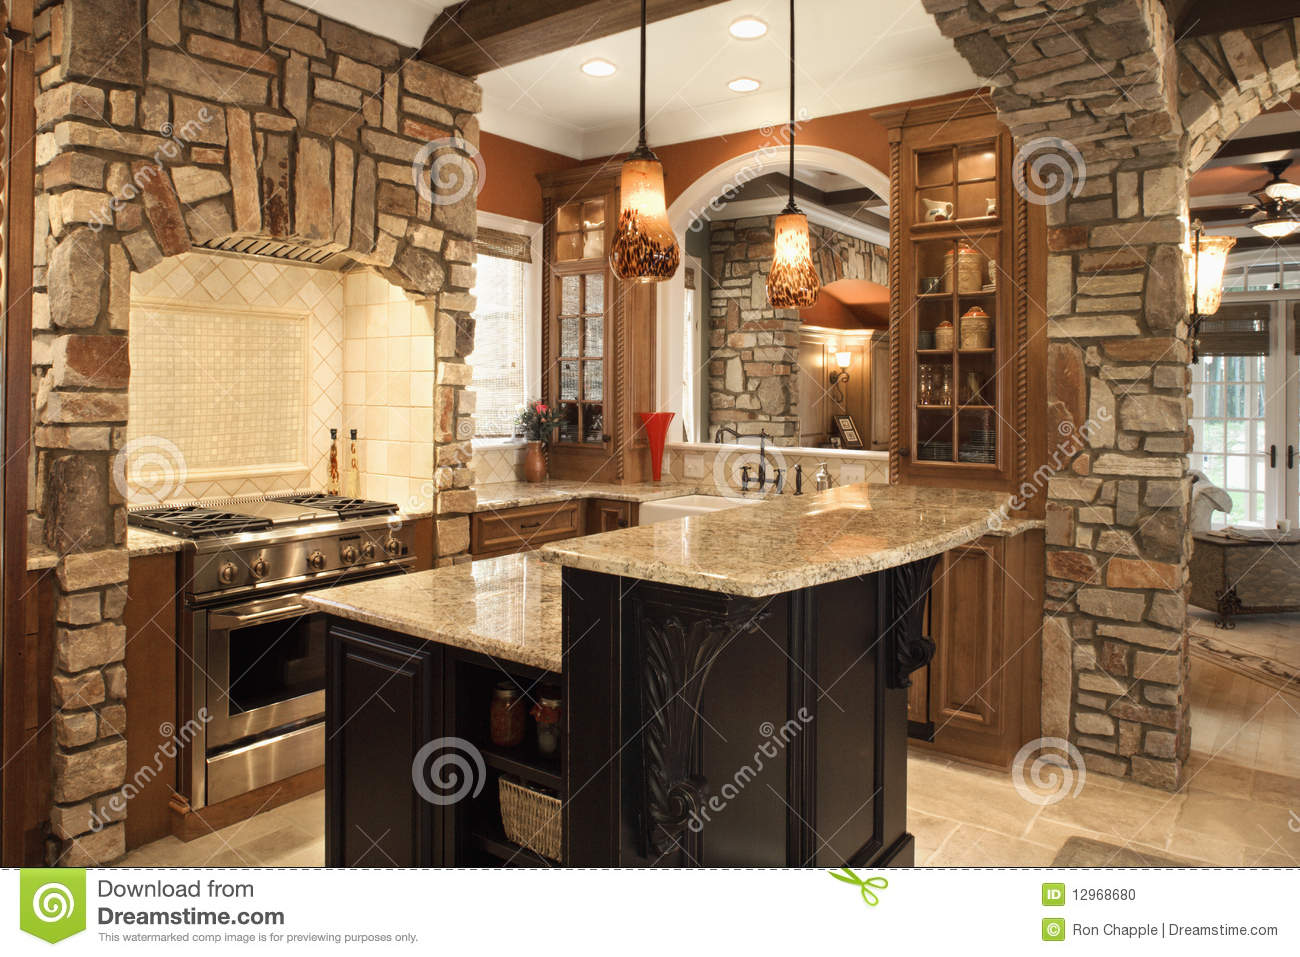 Kitchen interior with stone accents in affluent ho stock for Cuisine equipee avec bar